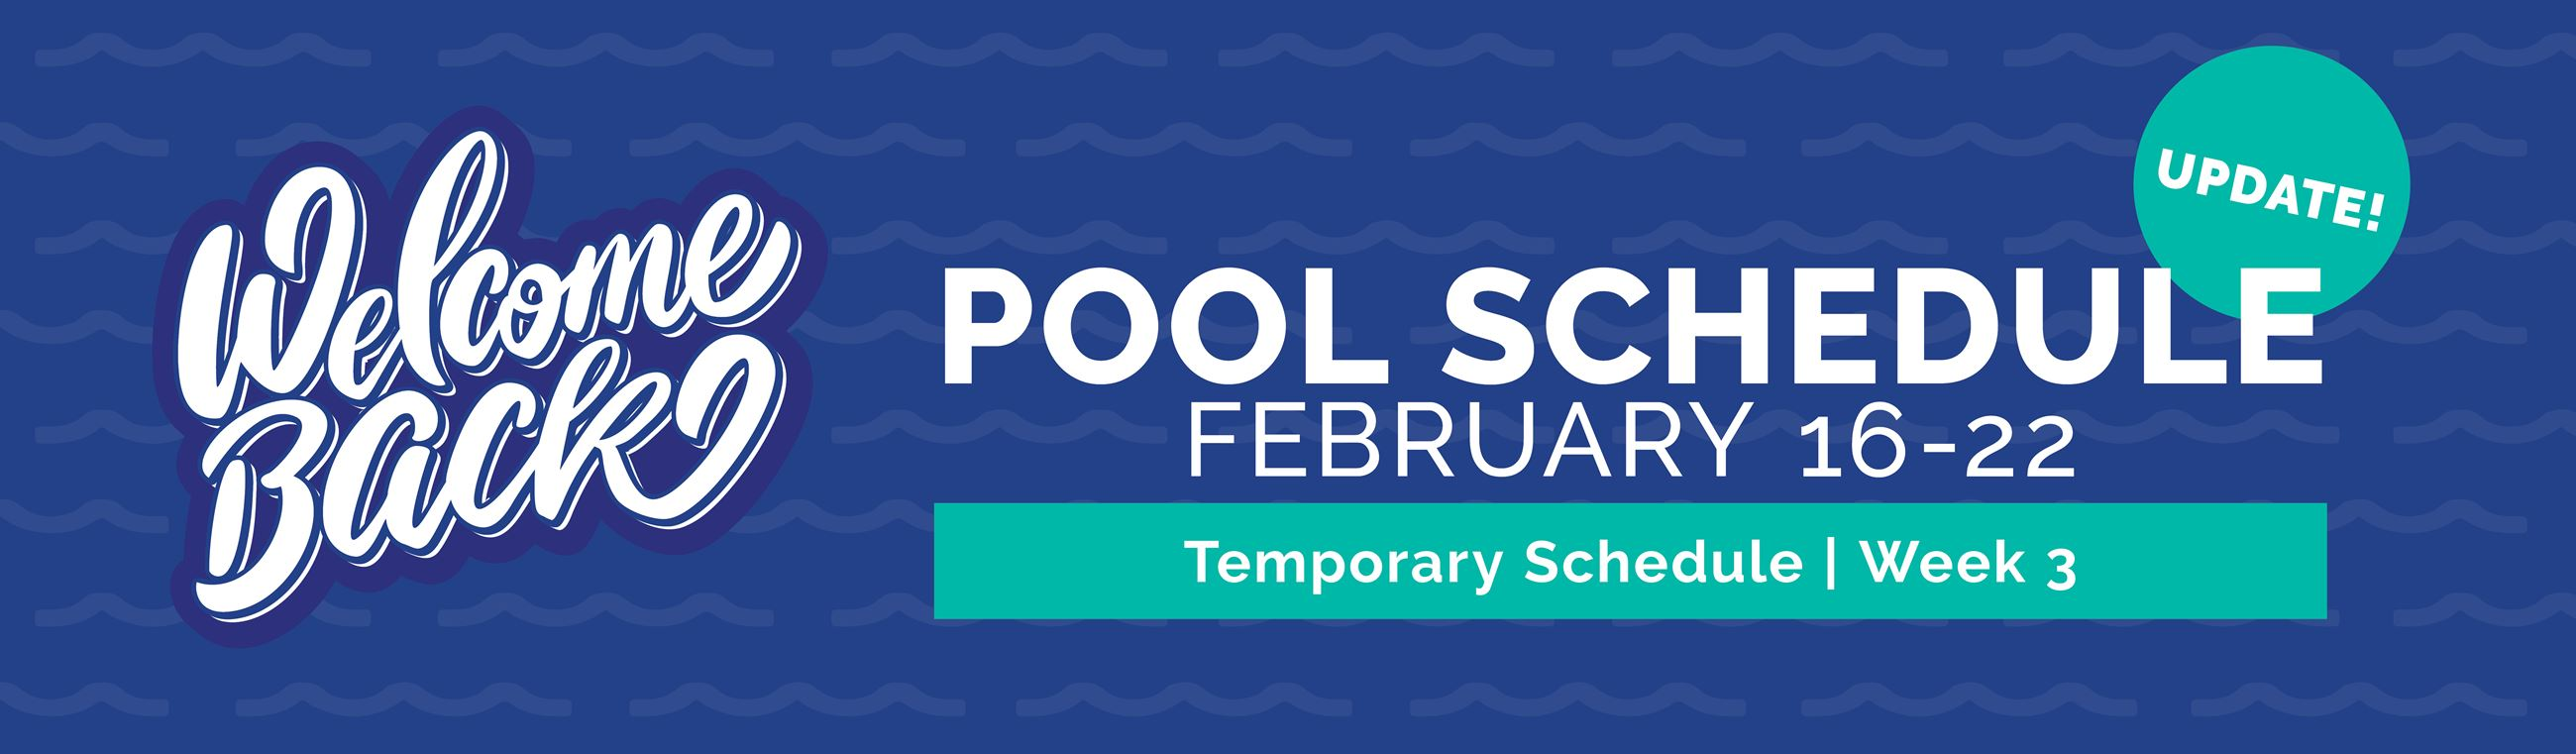 Aquatics_Week2PoolSchedule_Banners_1035x200